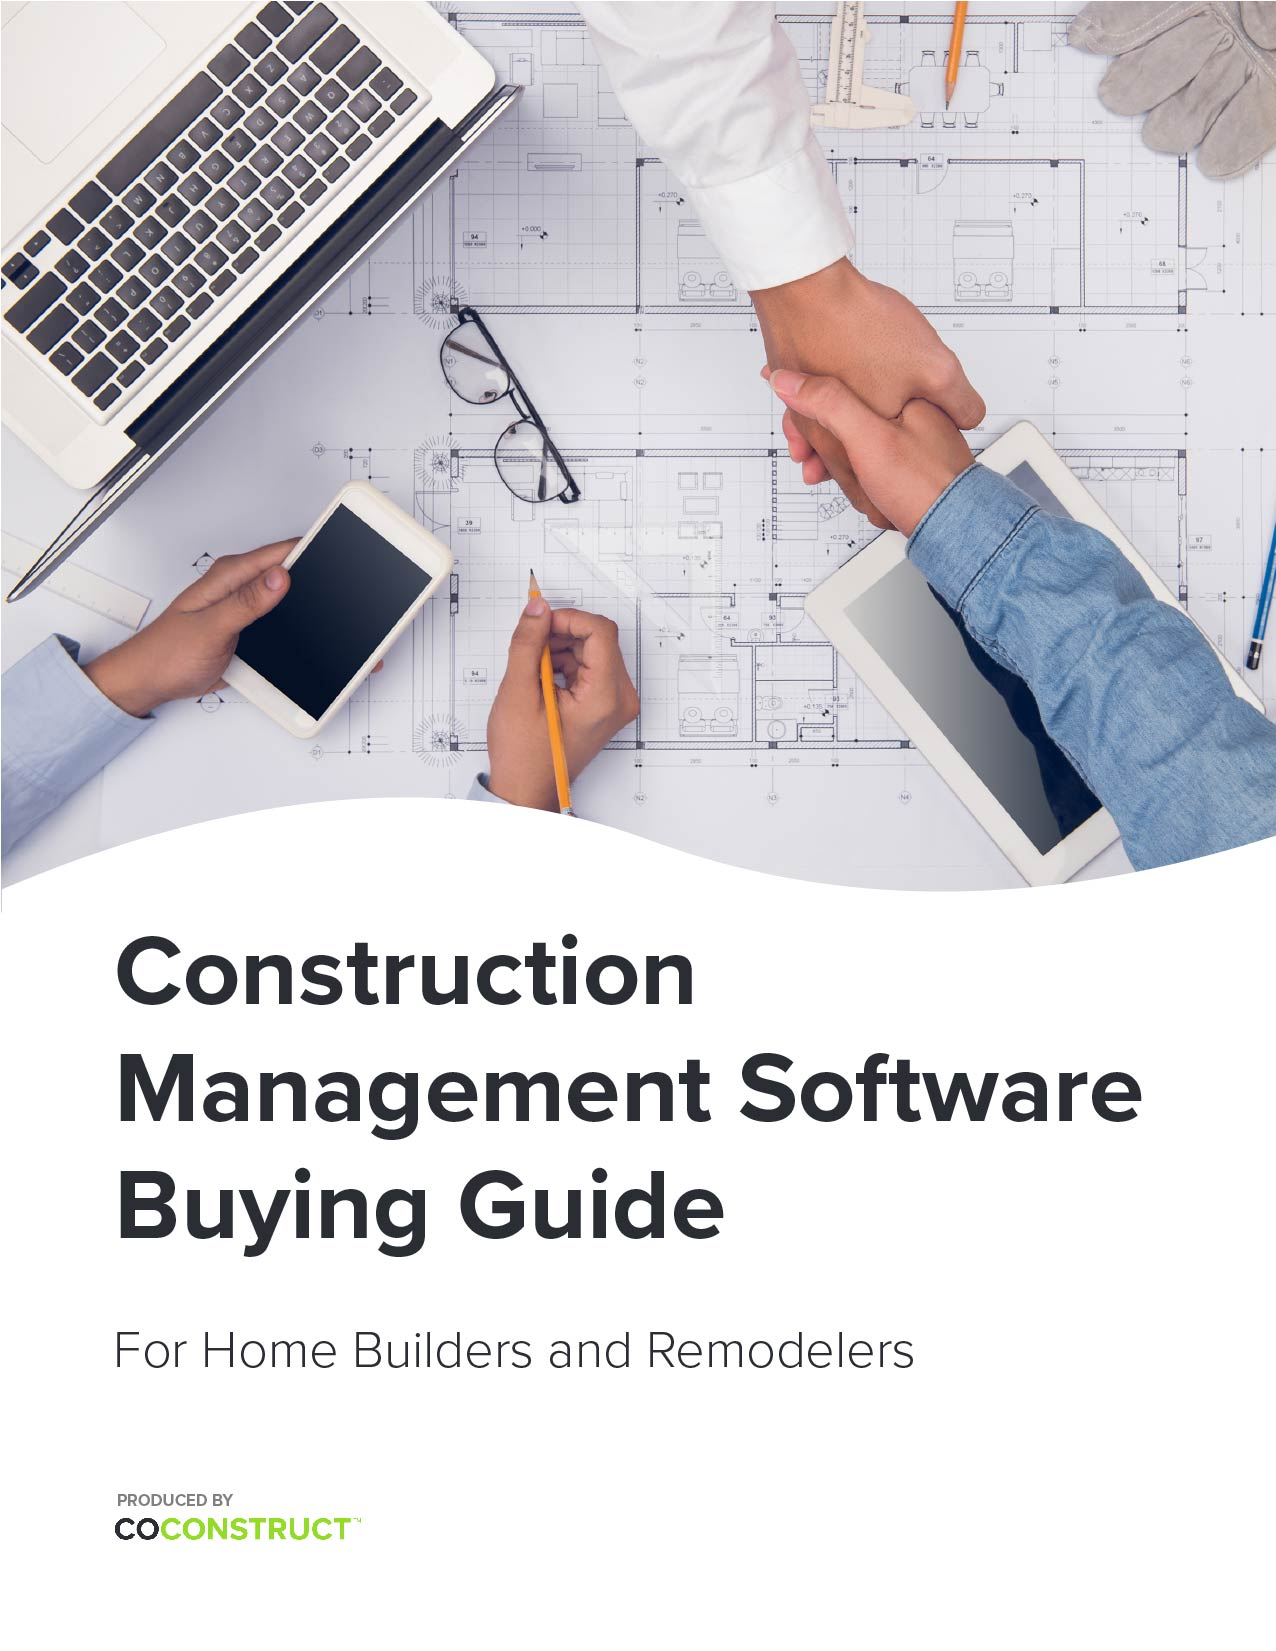 Construction Management Software Buying Guide